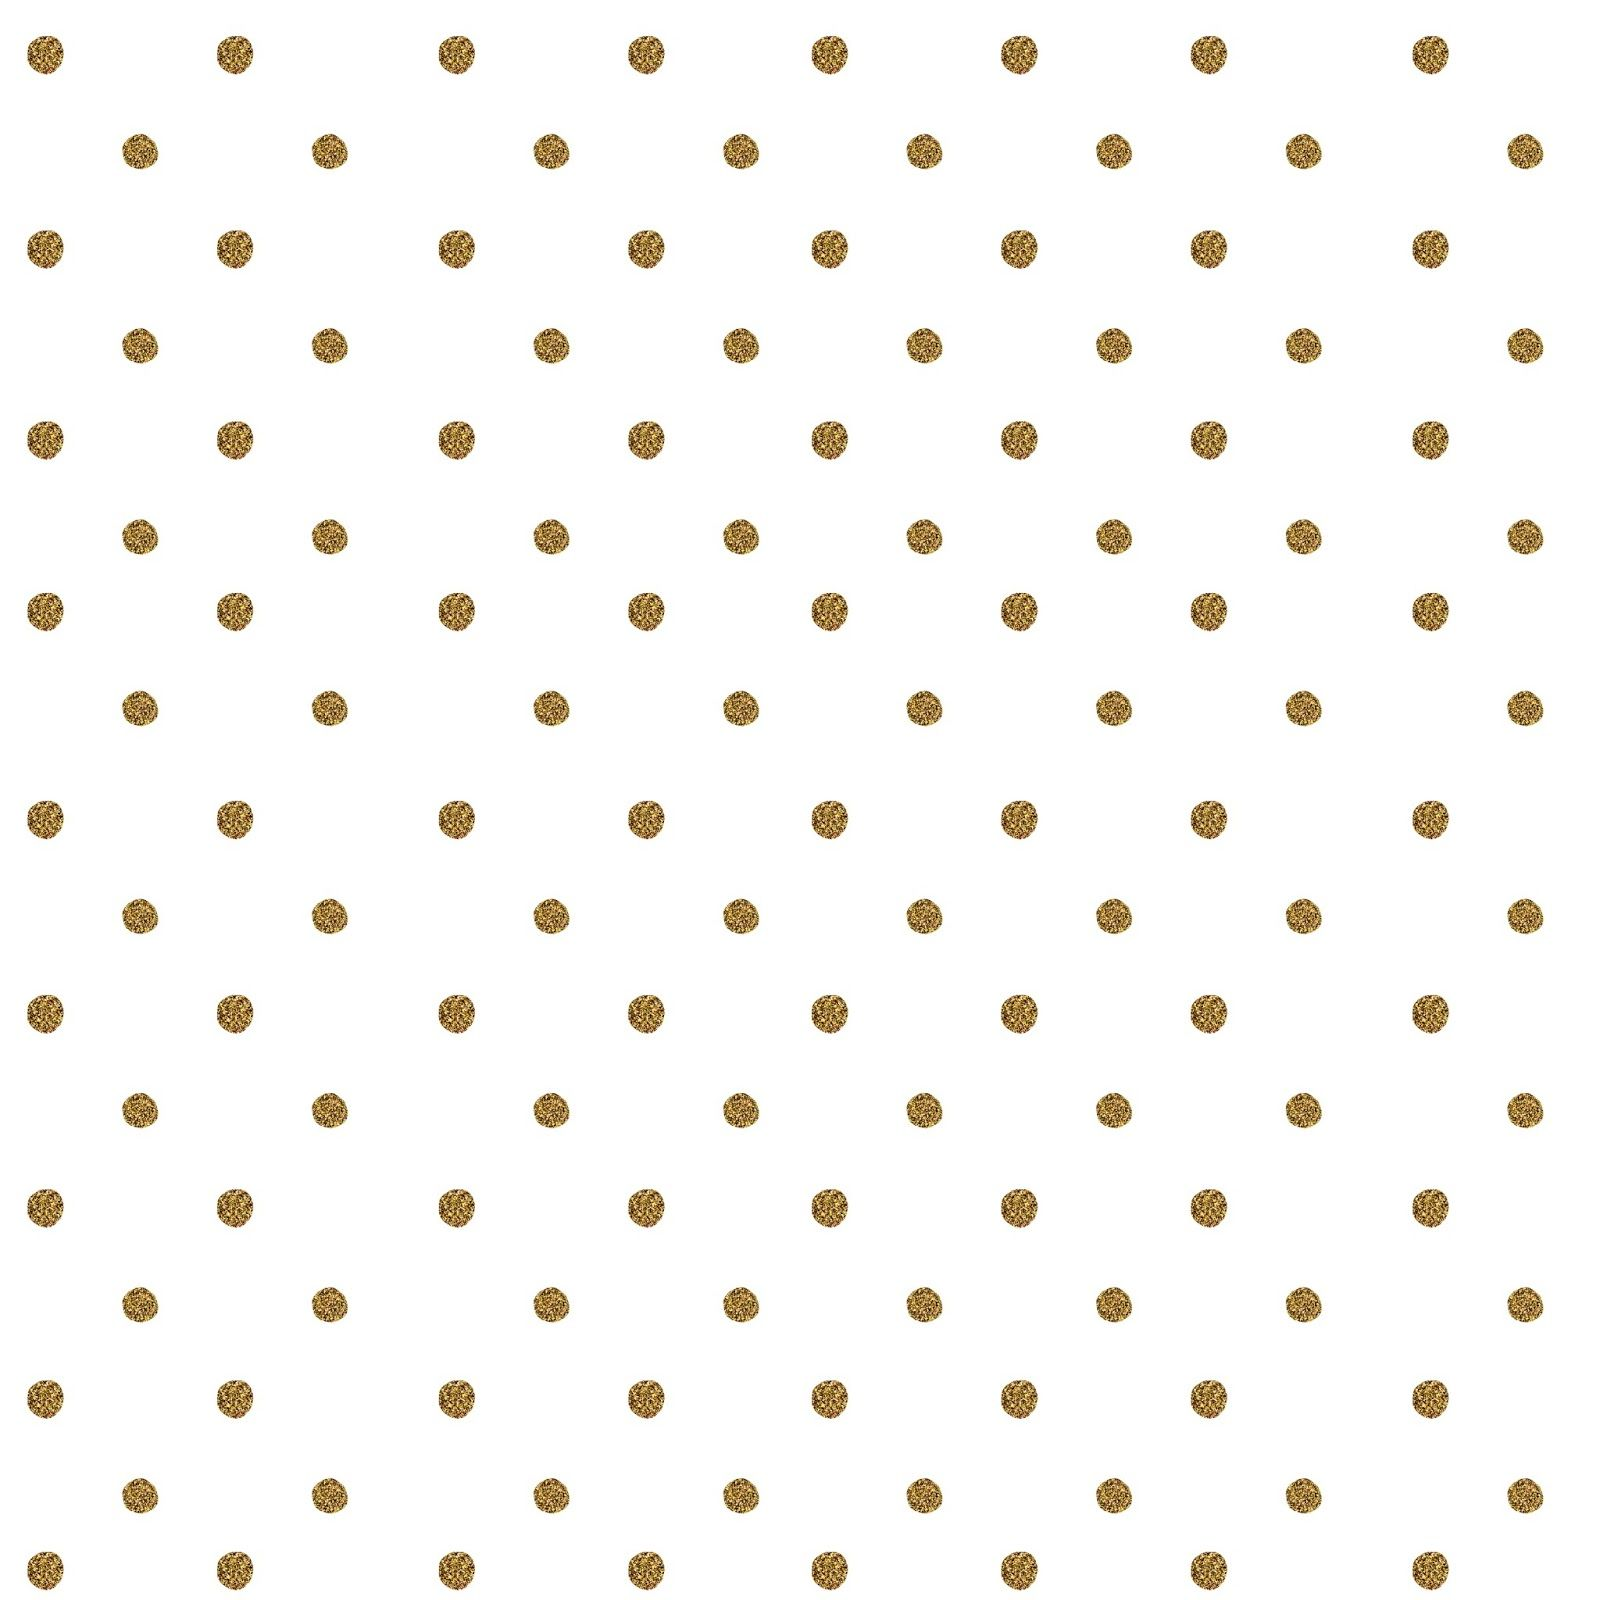 1600x1600 Free Vectors Free Girly Gold Glitter Backgrounds Art Amp Design